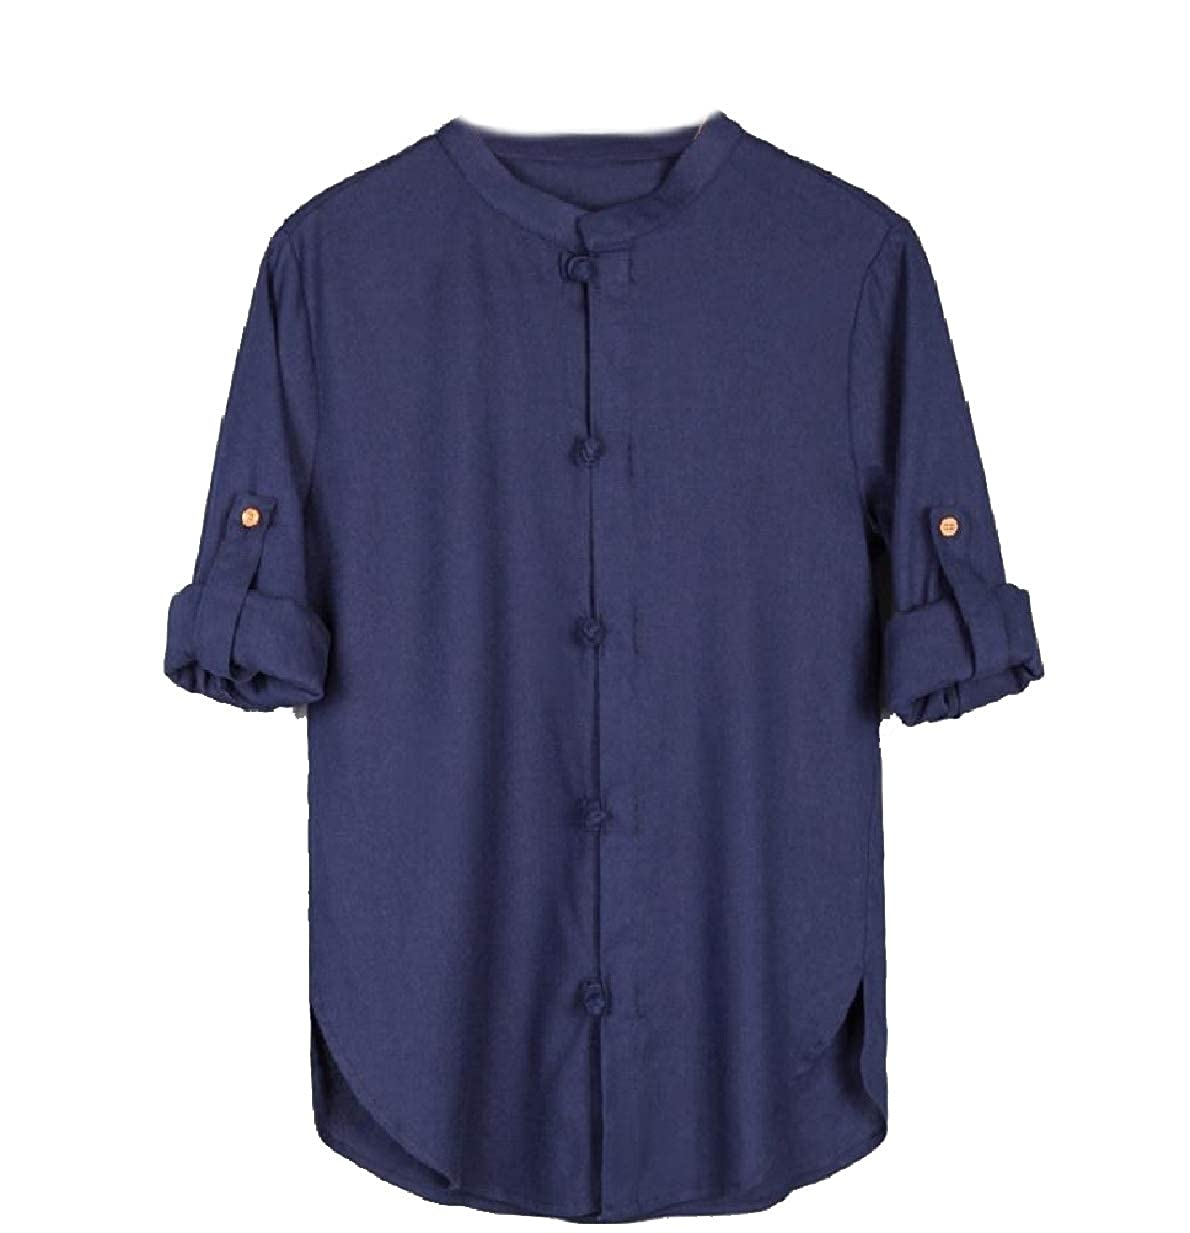 RDHOPE-Men Regular-Fit Solid-Colored Big Tall Cotton//Linen Woven Shirt